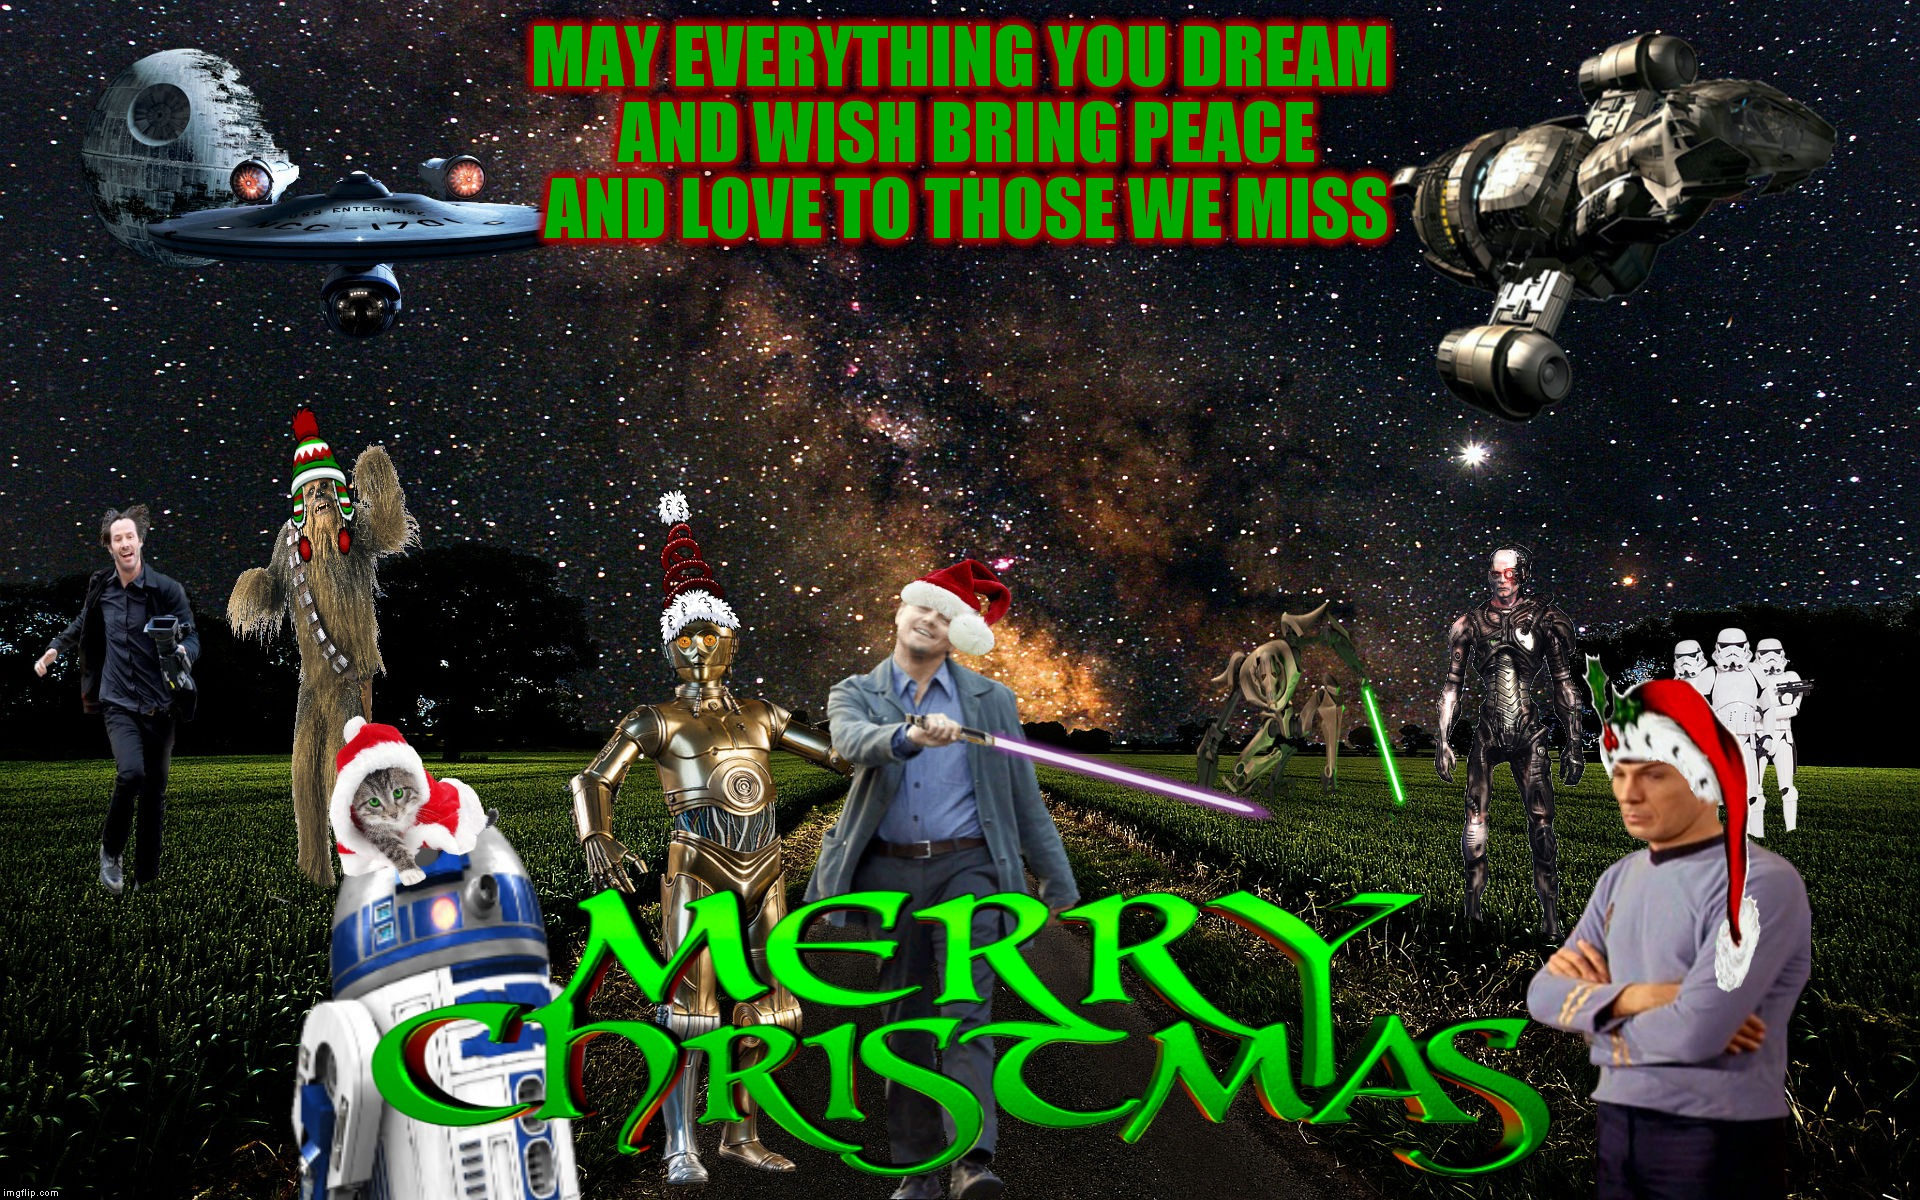 A very Merry sci-fi memeable Christmas to all of my fellow imgflippers! | MAY EVERYTHING YOU DREAM AND WISH BRING PEACE AND LOVE TO THOSE WE MISS | image tagged in imgflip unite,merry christmas,imgflippers,jying | made w/ Imgflip meme maker